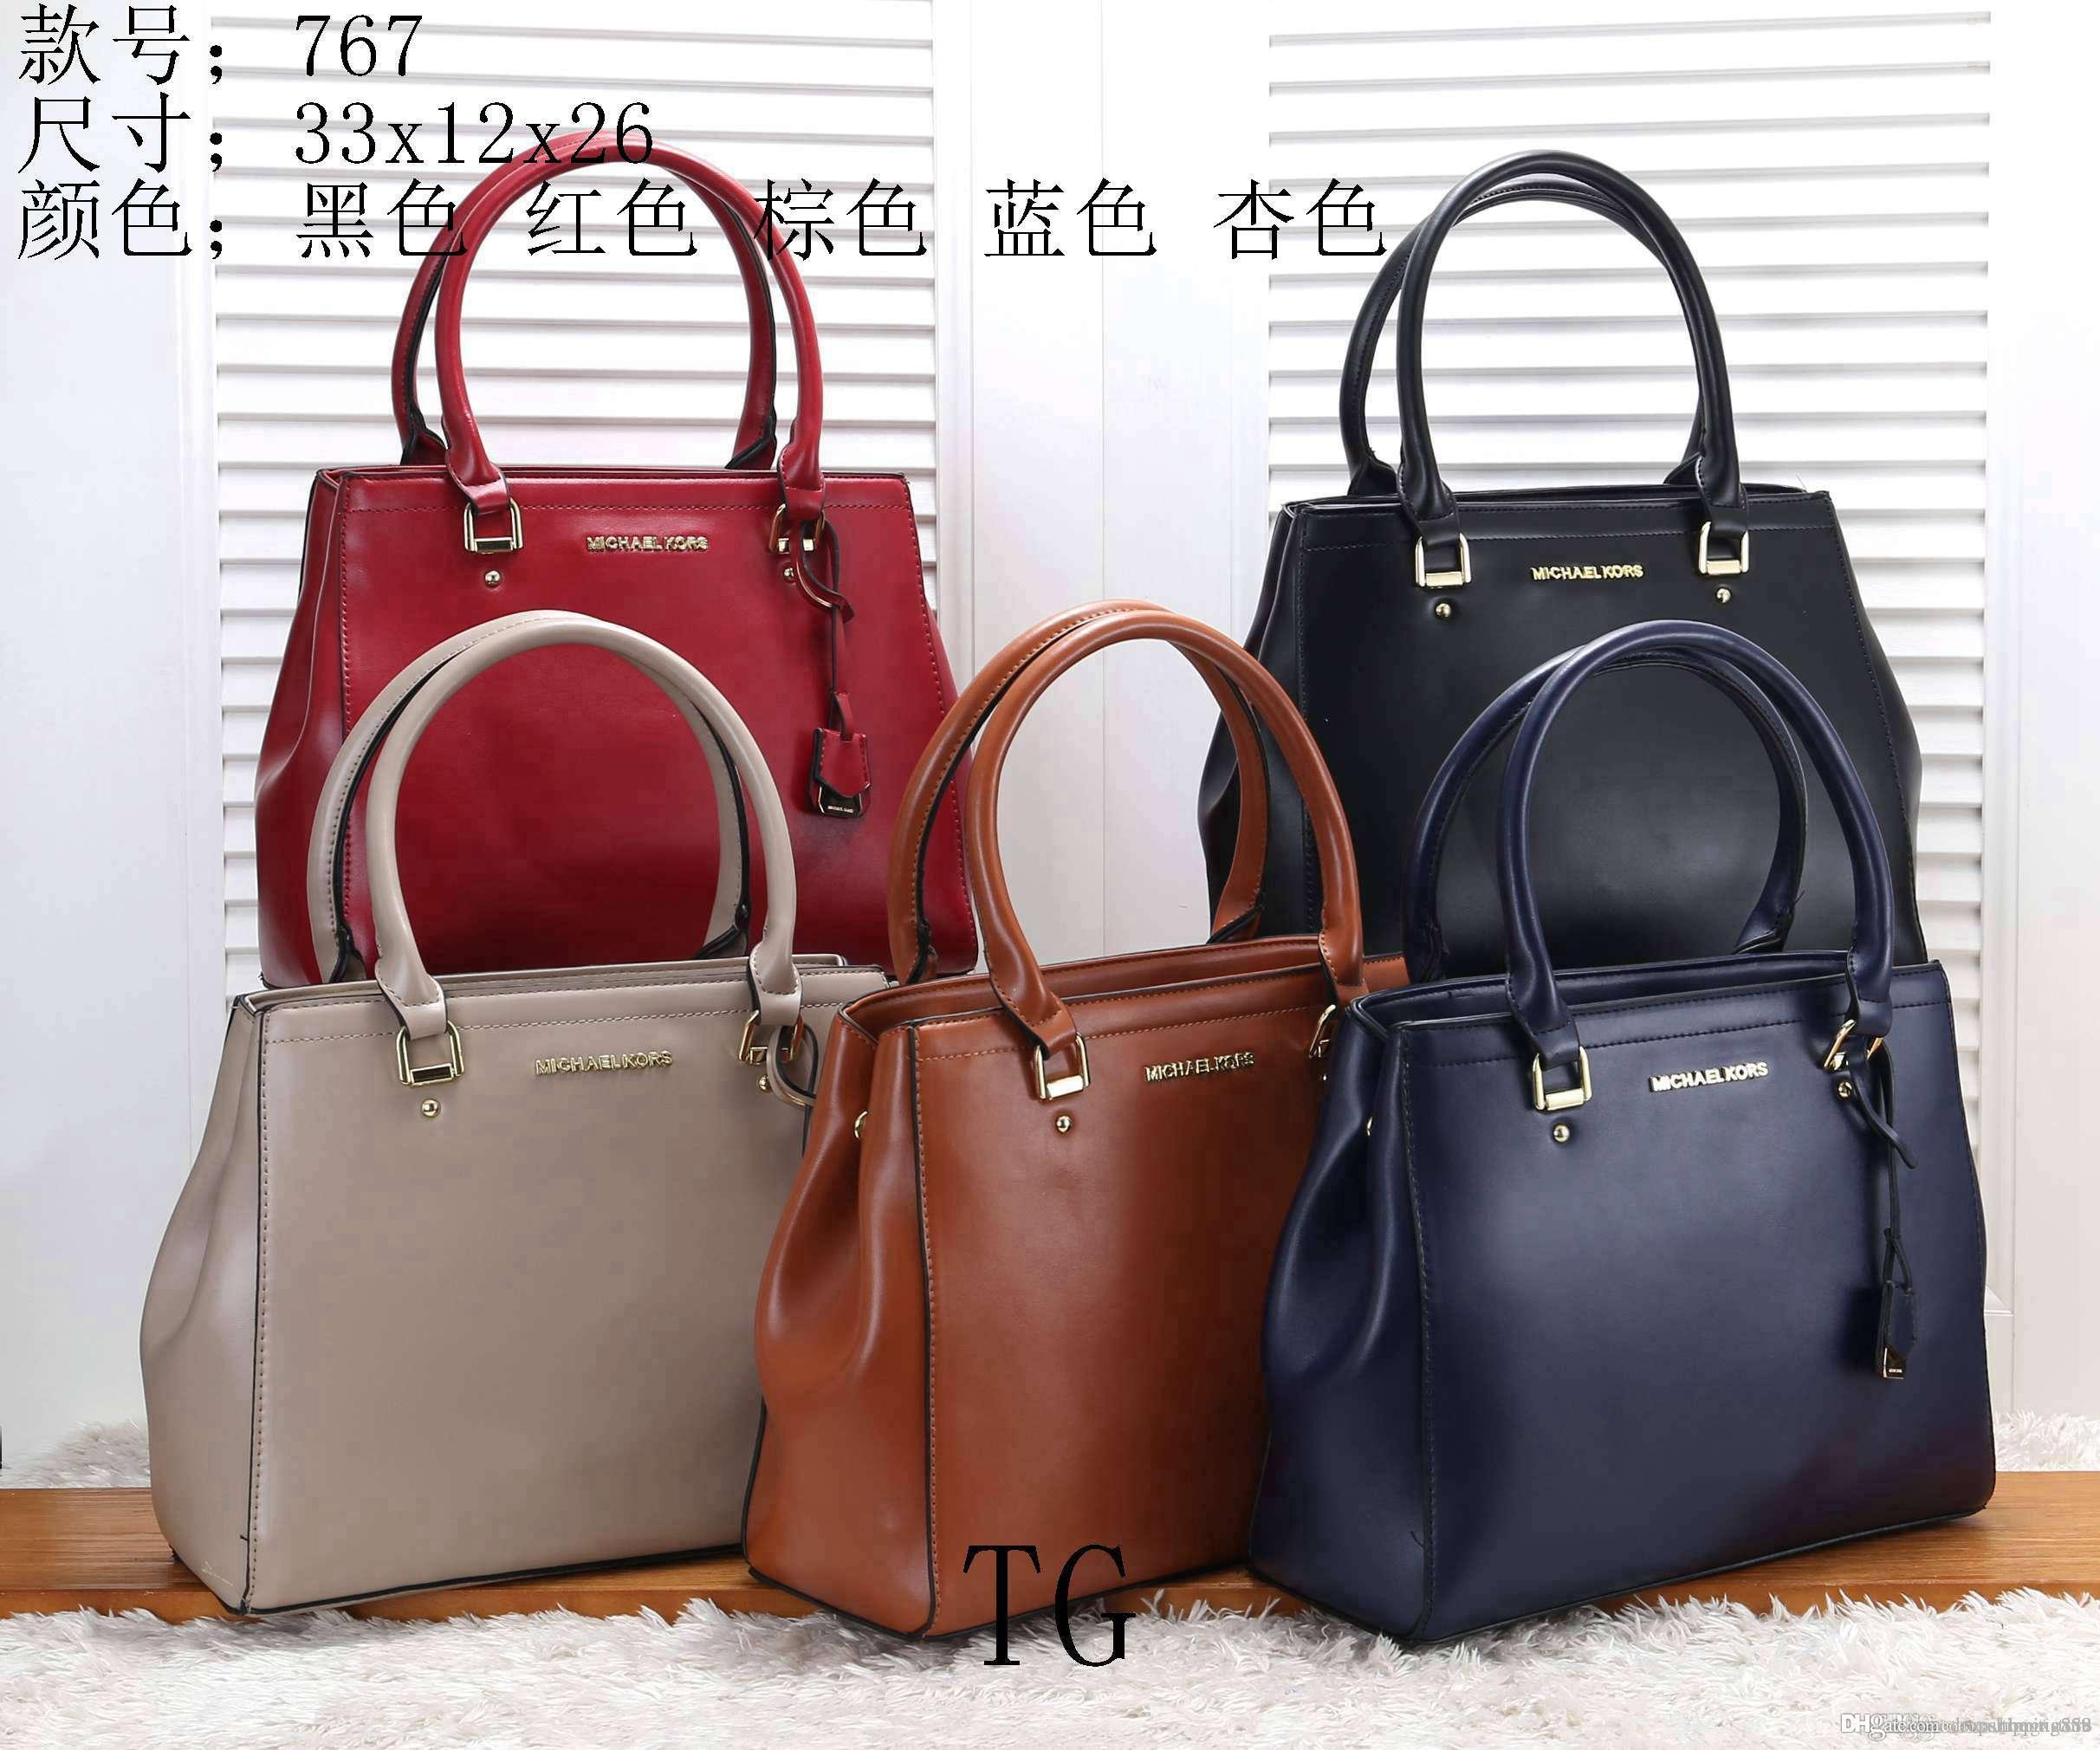 MK 767 TG NEW Styles Fashion Bags Ladies Handbags Designer Bags Women Tote  Bag Luxury Brands Bags Single Shoulder Bag Online with  33.15 Piece on ... 8bde90aeed45c